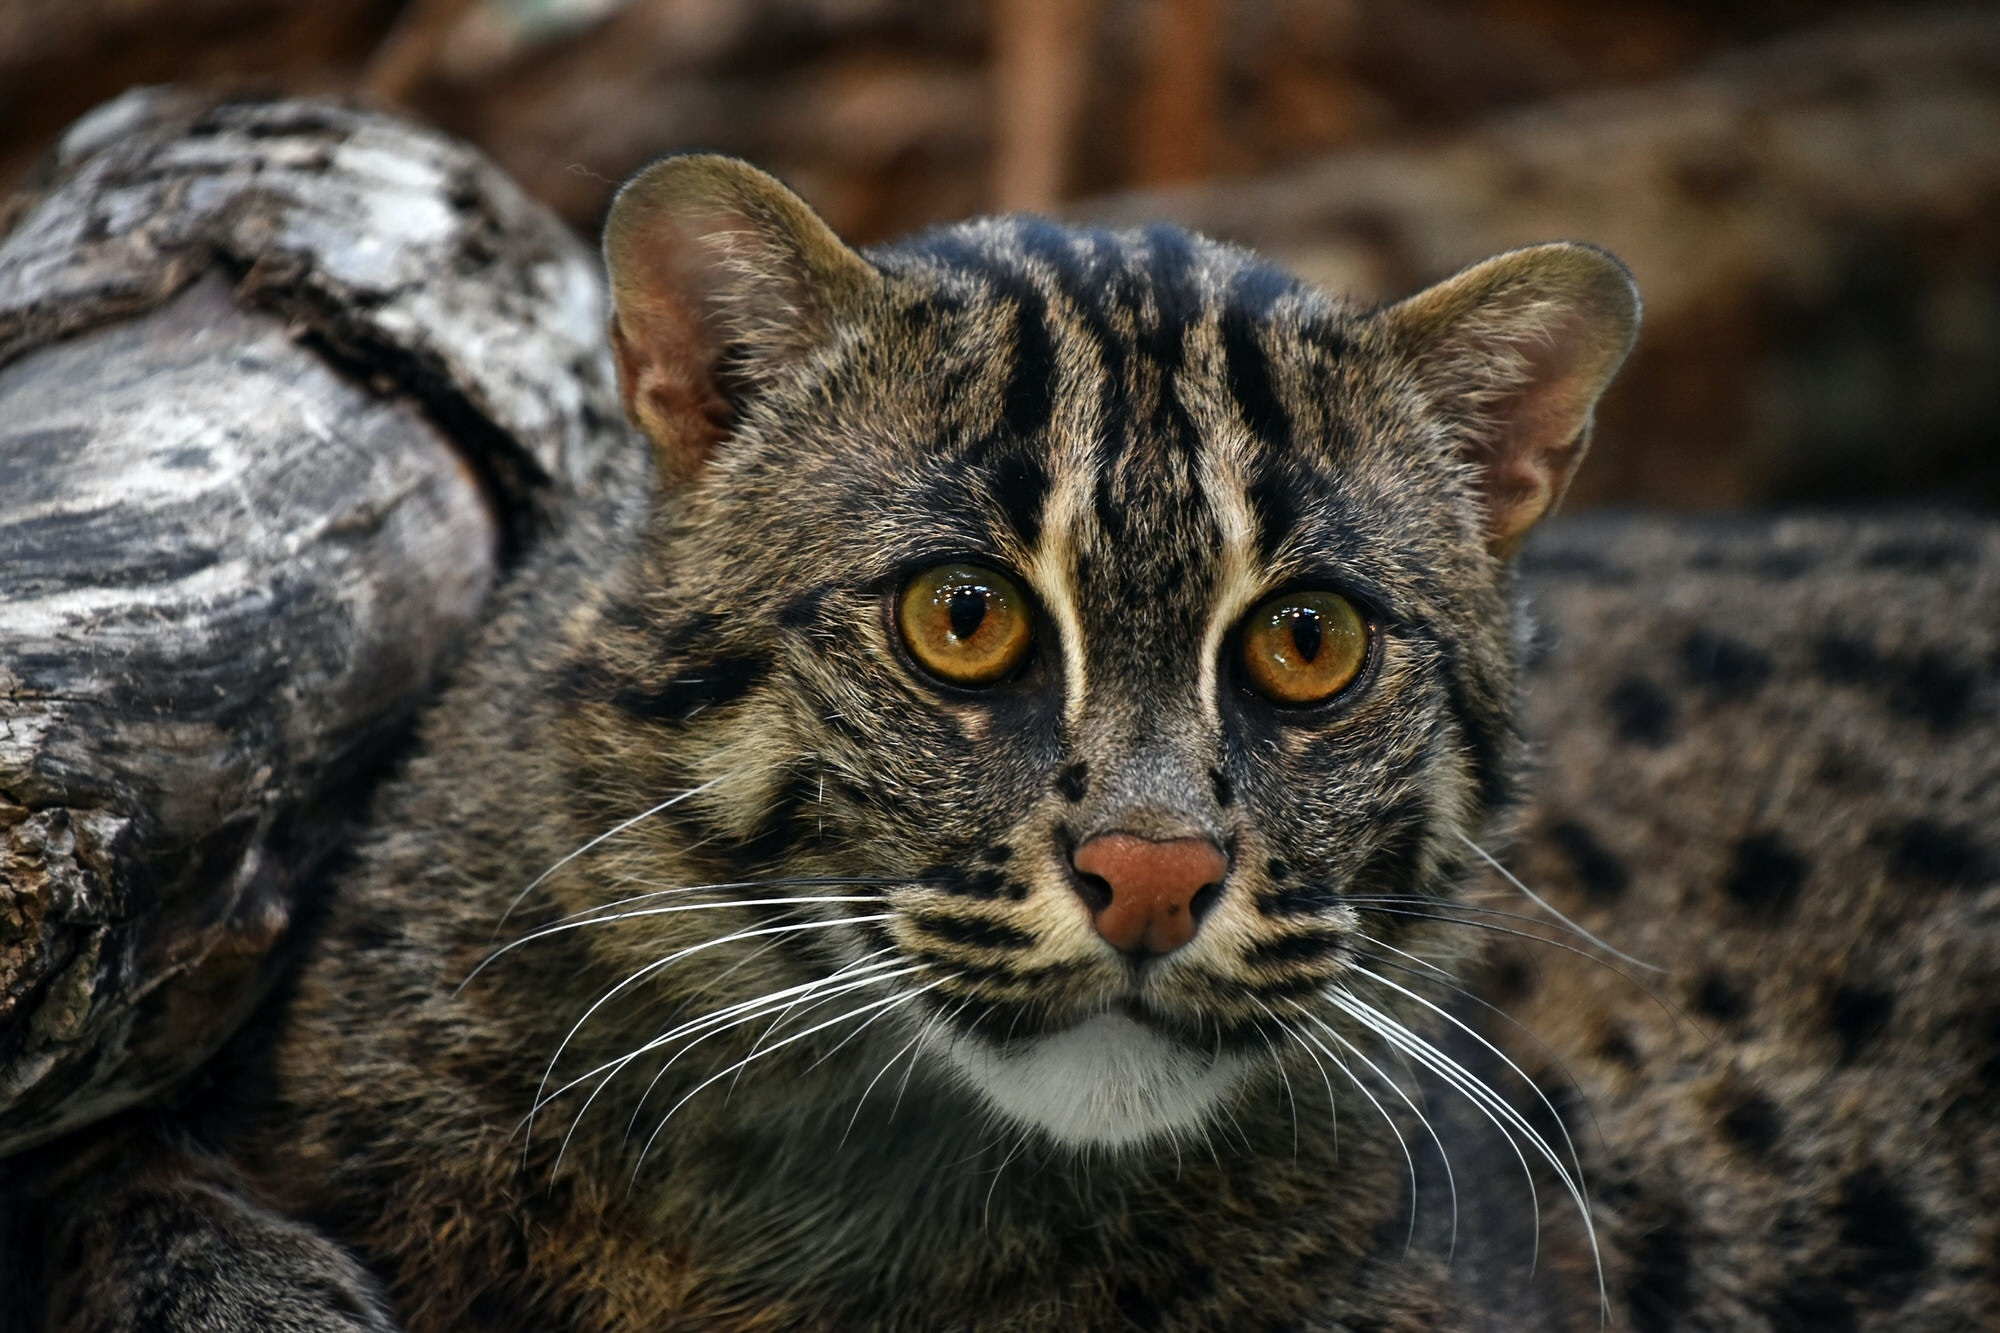 A portrait shot of a fishing cat, a large feline that lives in the wetlands around Colombo, Sri Lanka